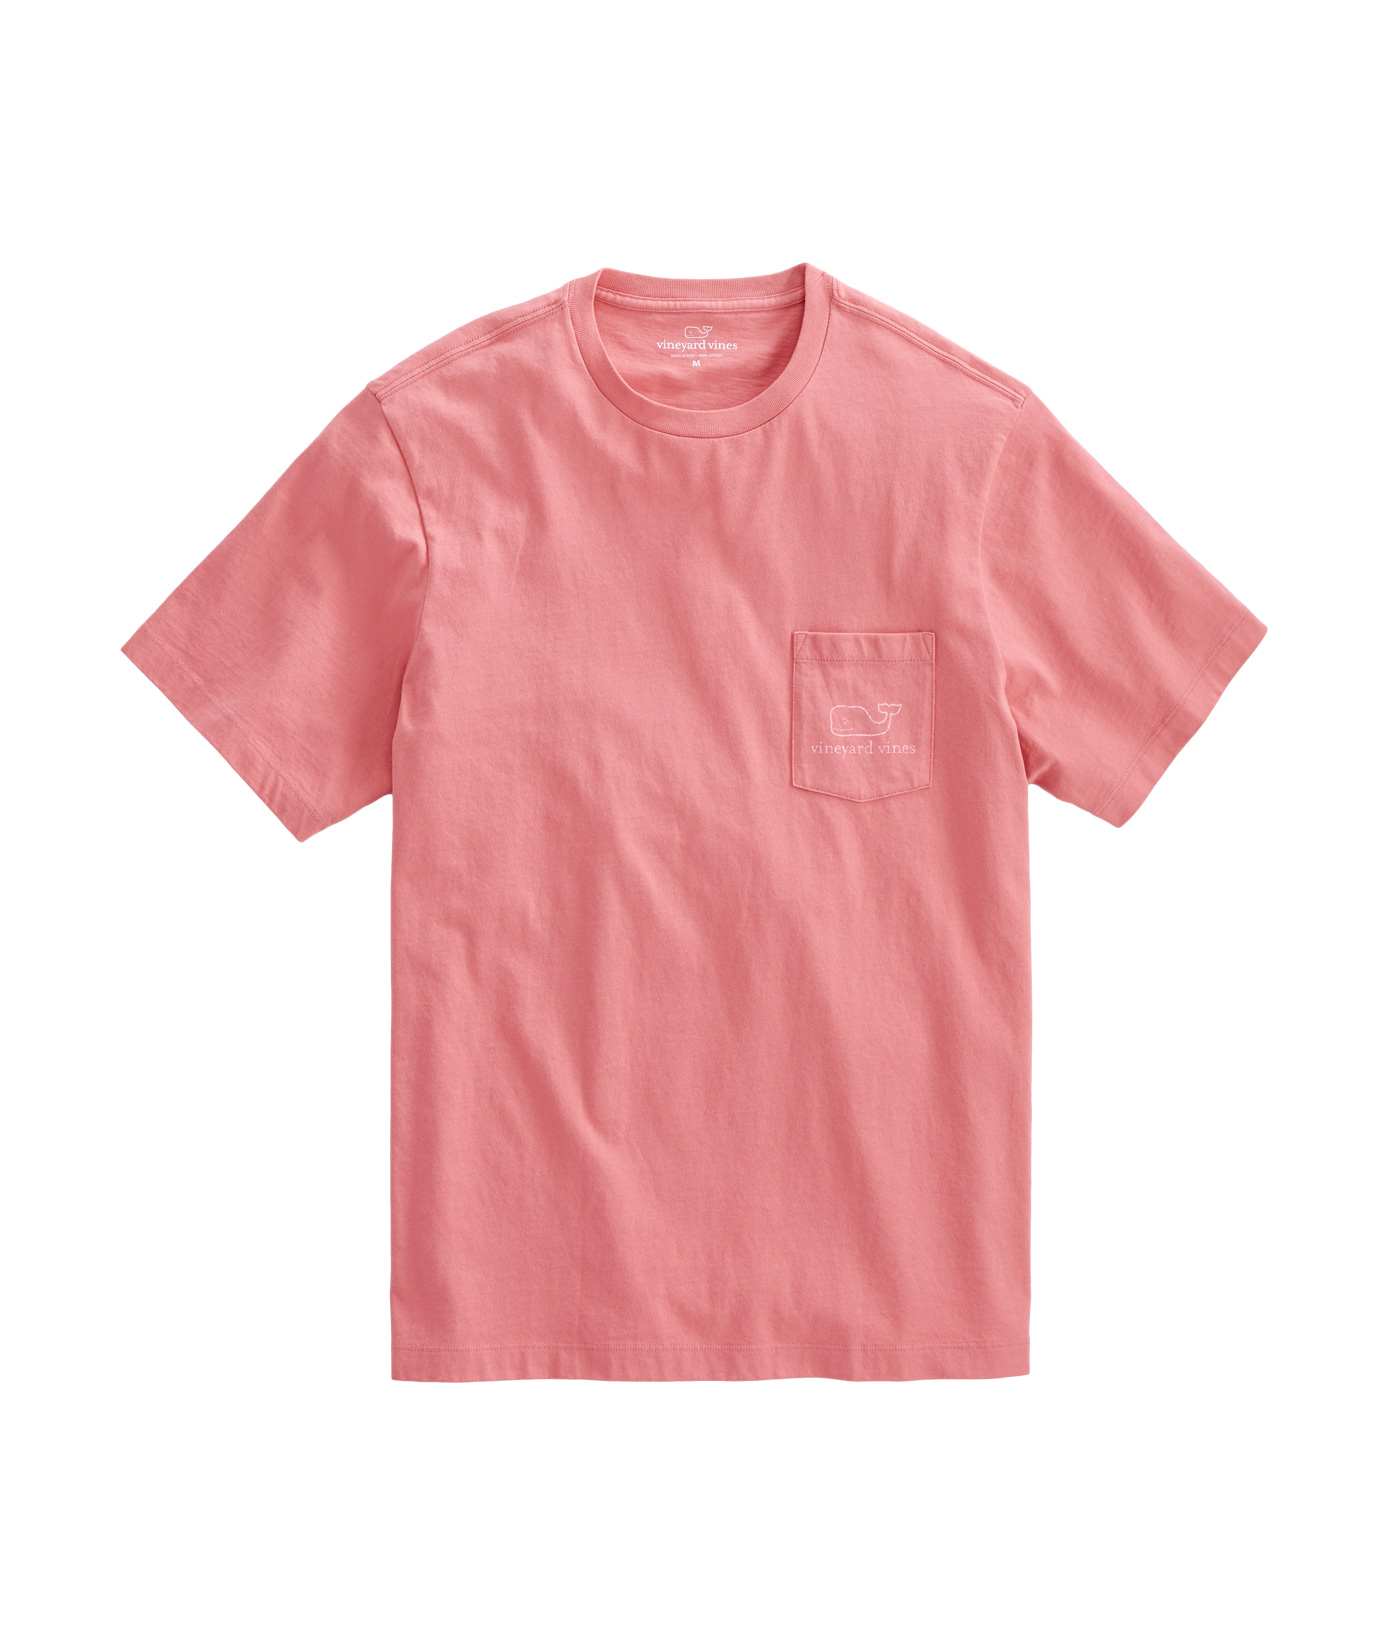 Add new clothes to your child's closet with the kids' clothes sale from vineyard vines. Free shipping available on $+.